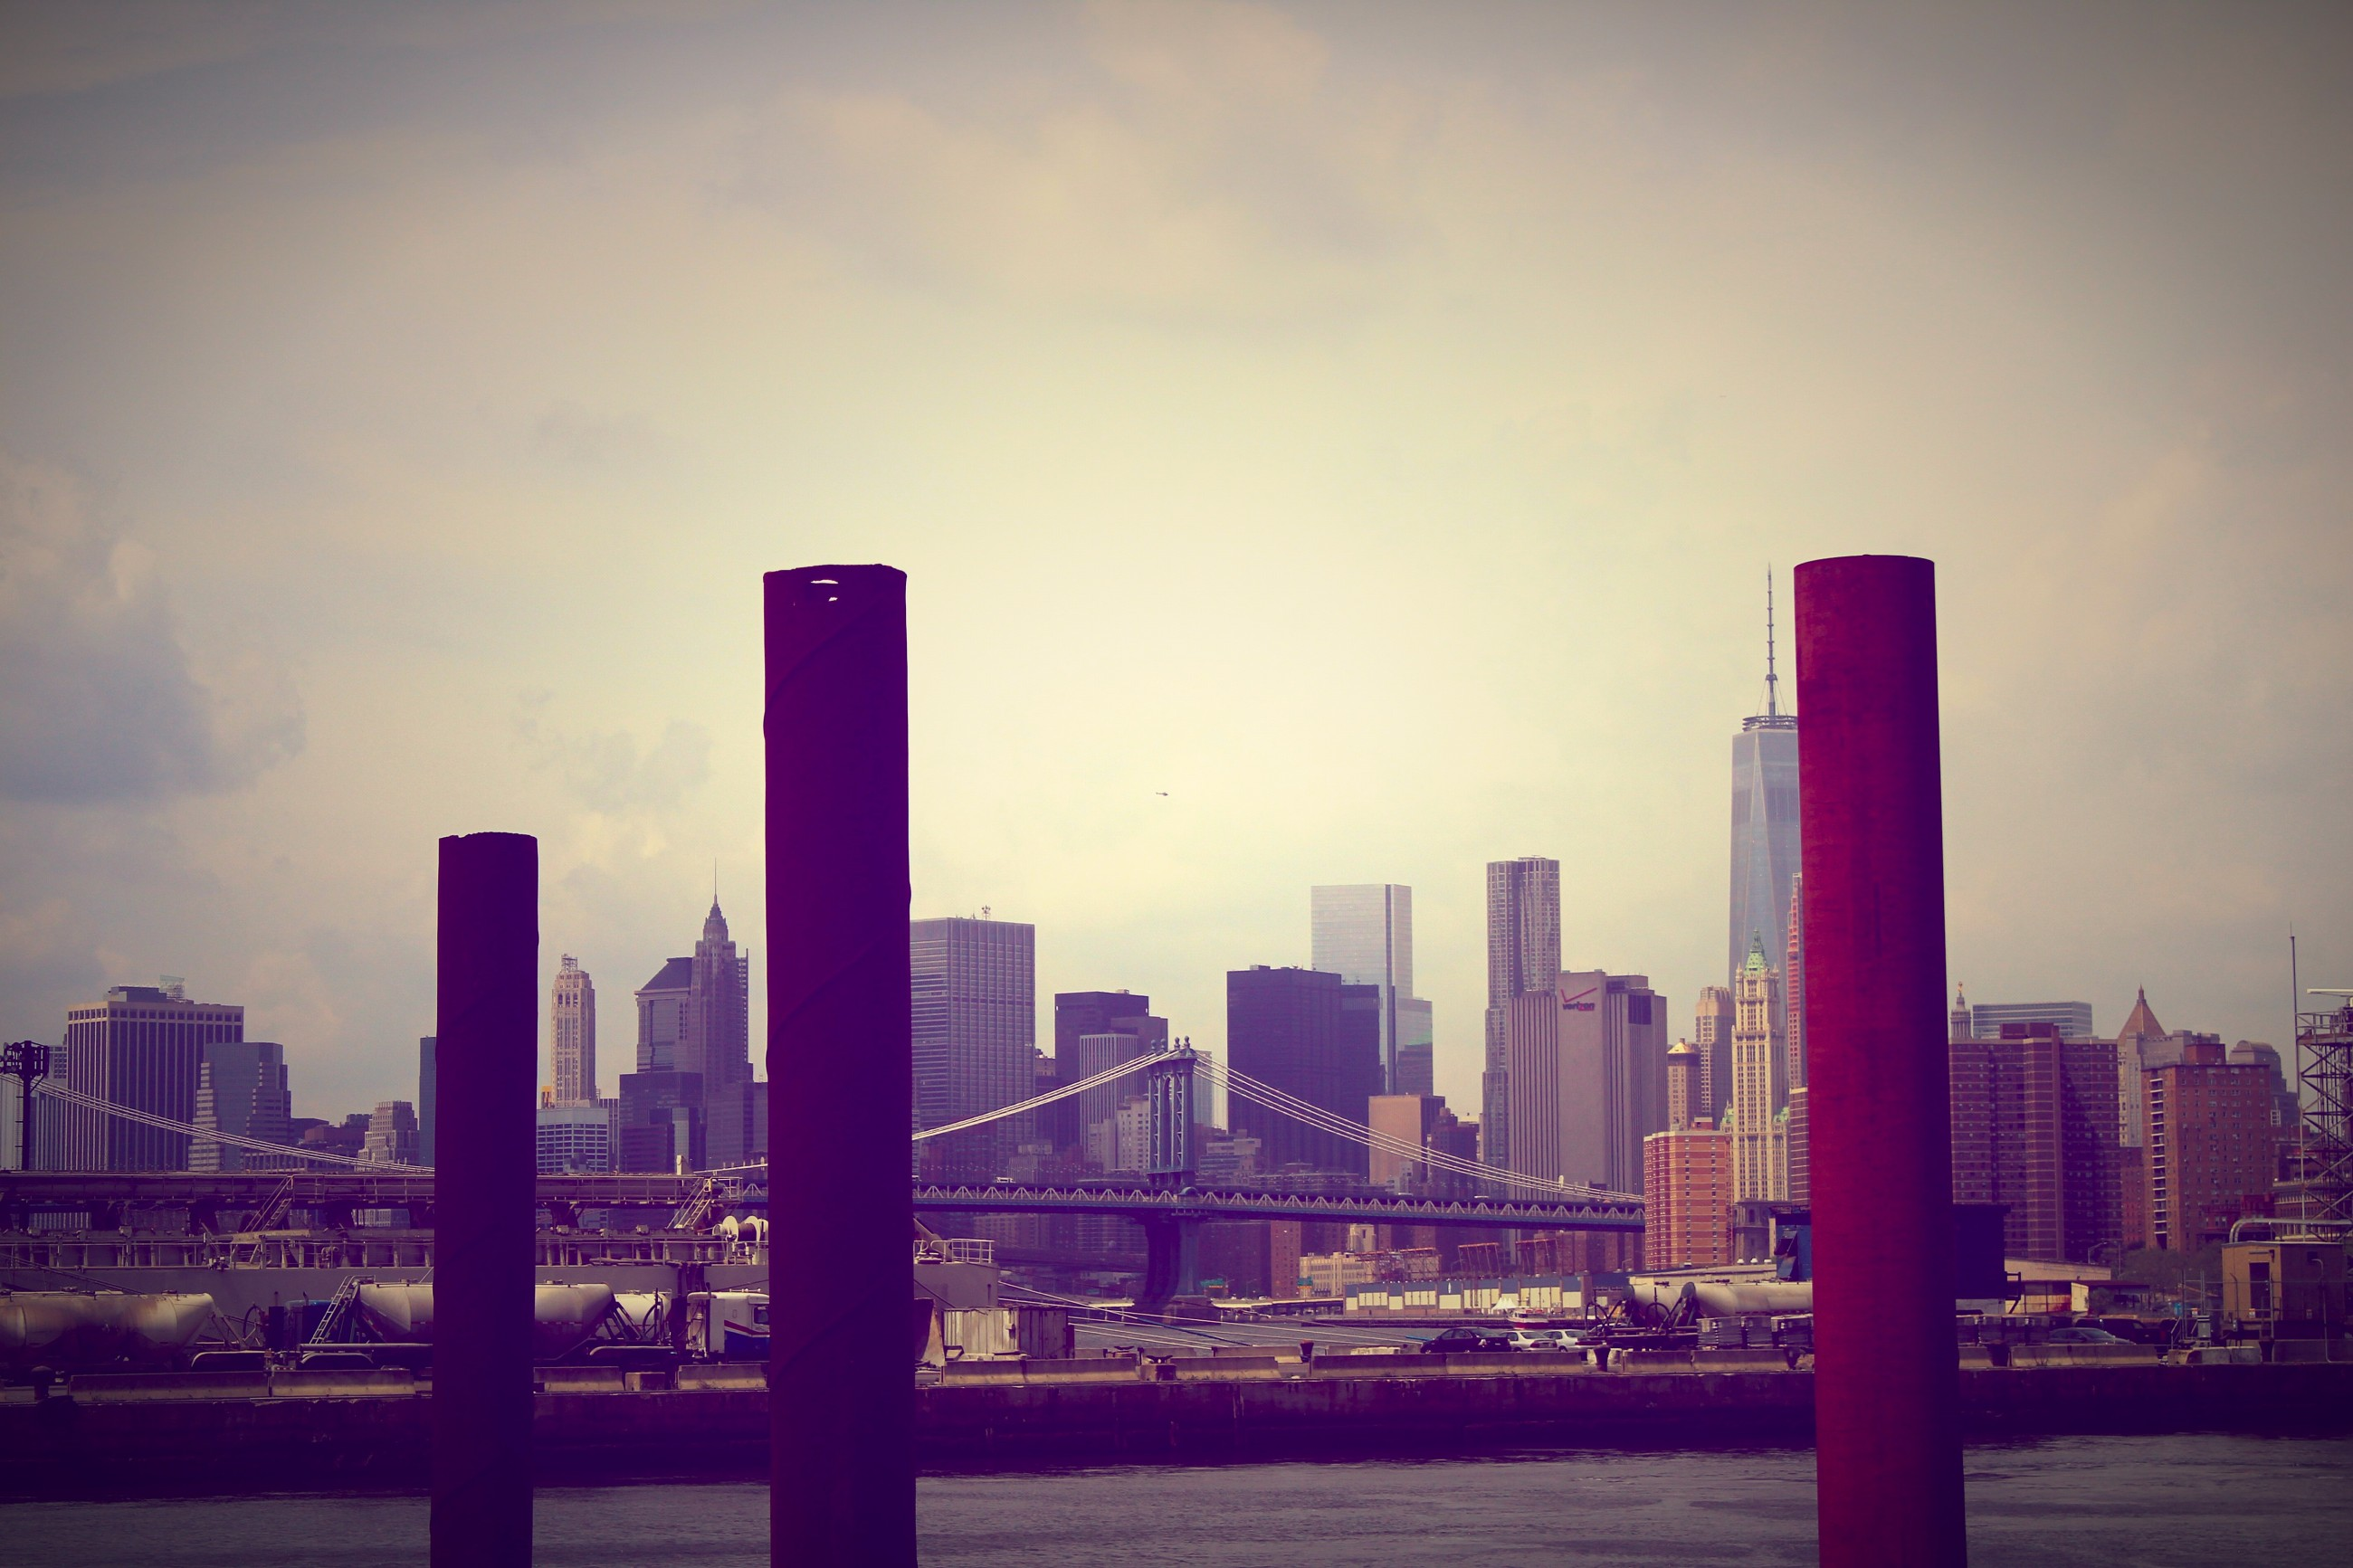 NYC, USA (photo : CS, Intégrales Mag), a country attentive to the protection of works and authors